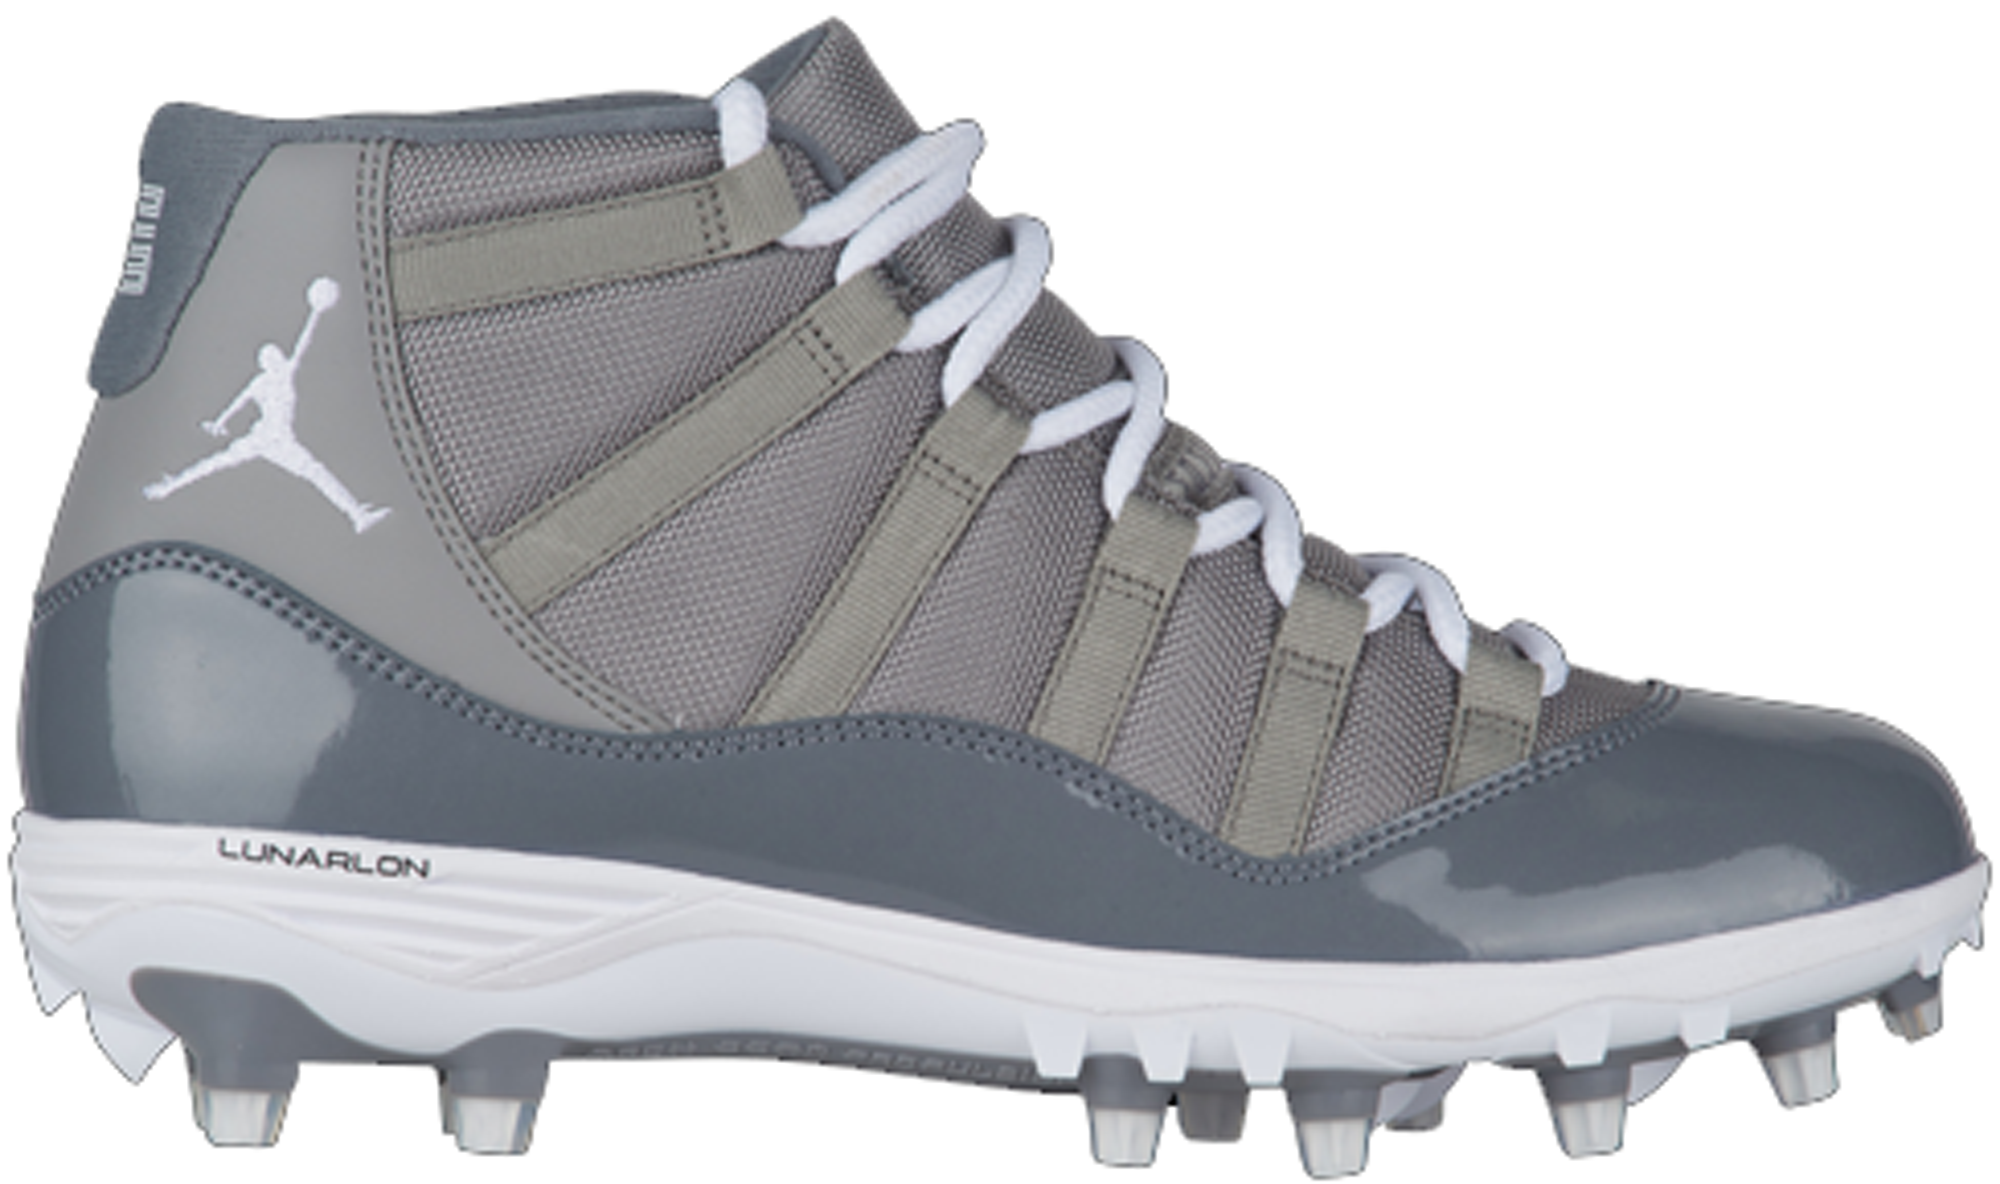 eb01a929ed7 Air Jordan 11 Cool Grey Cleat